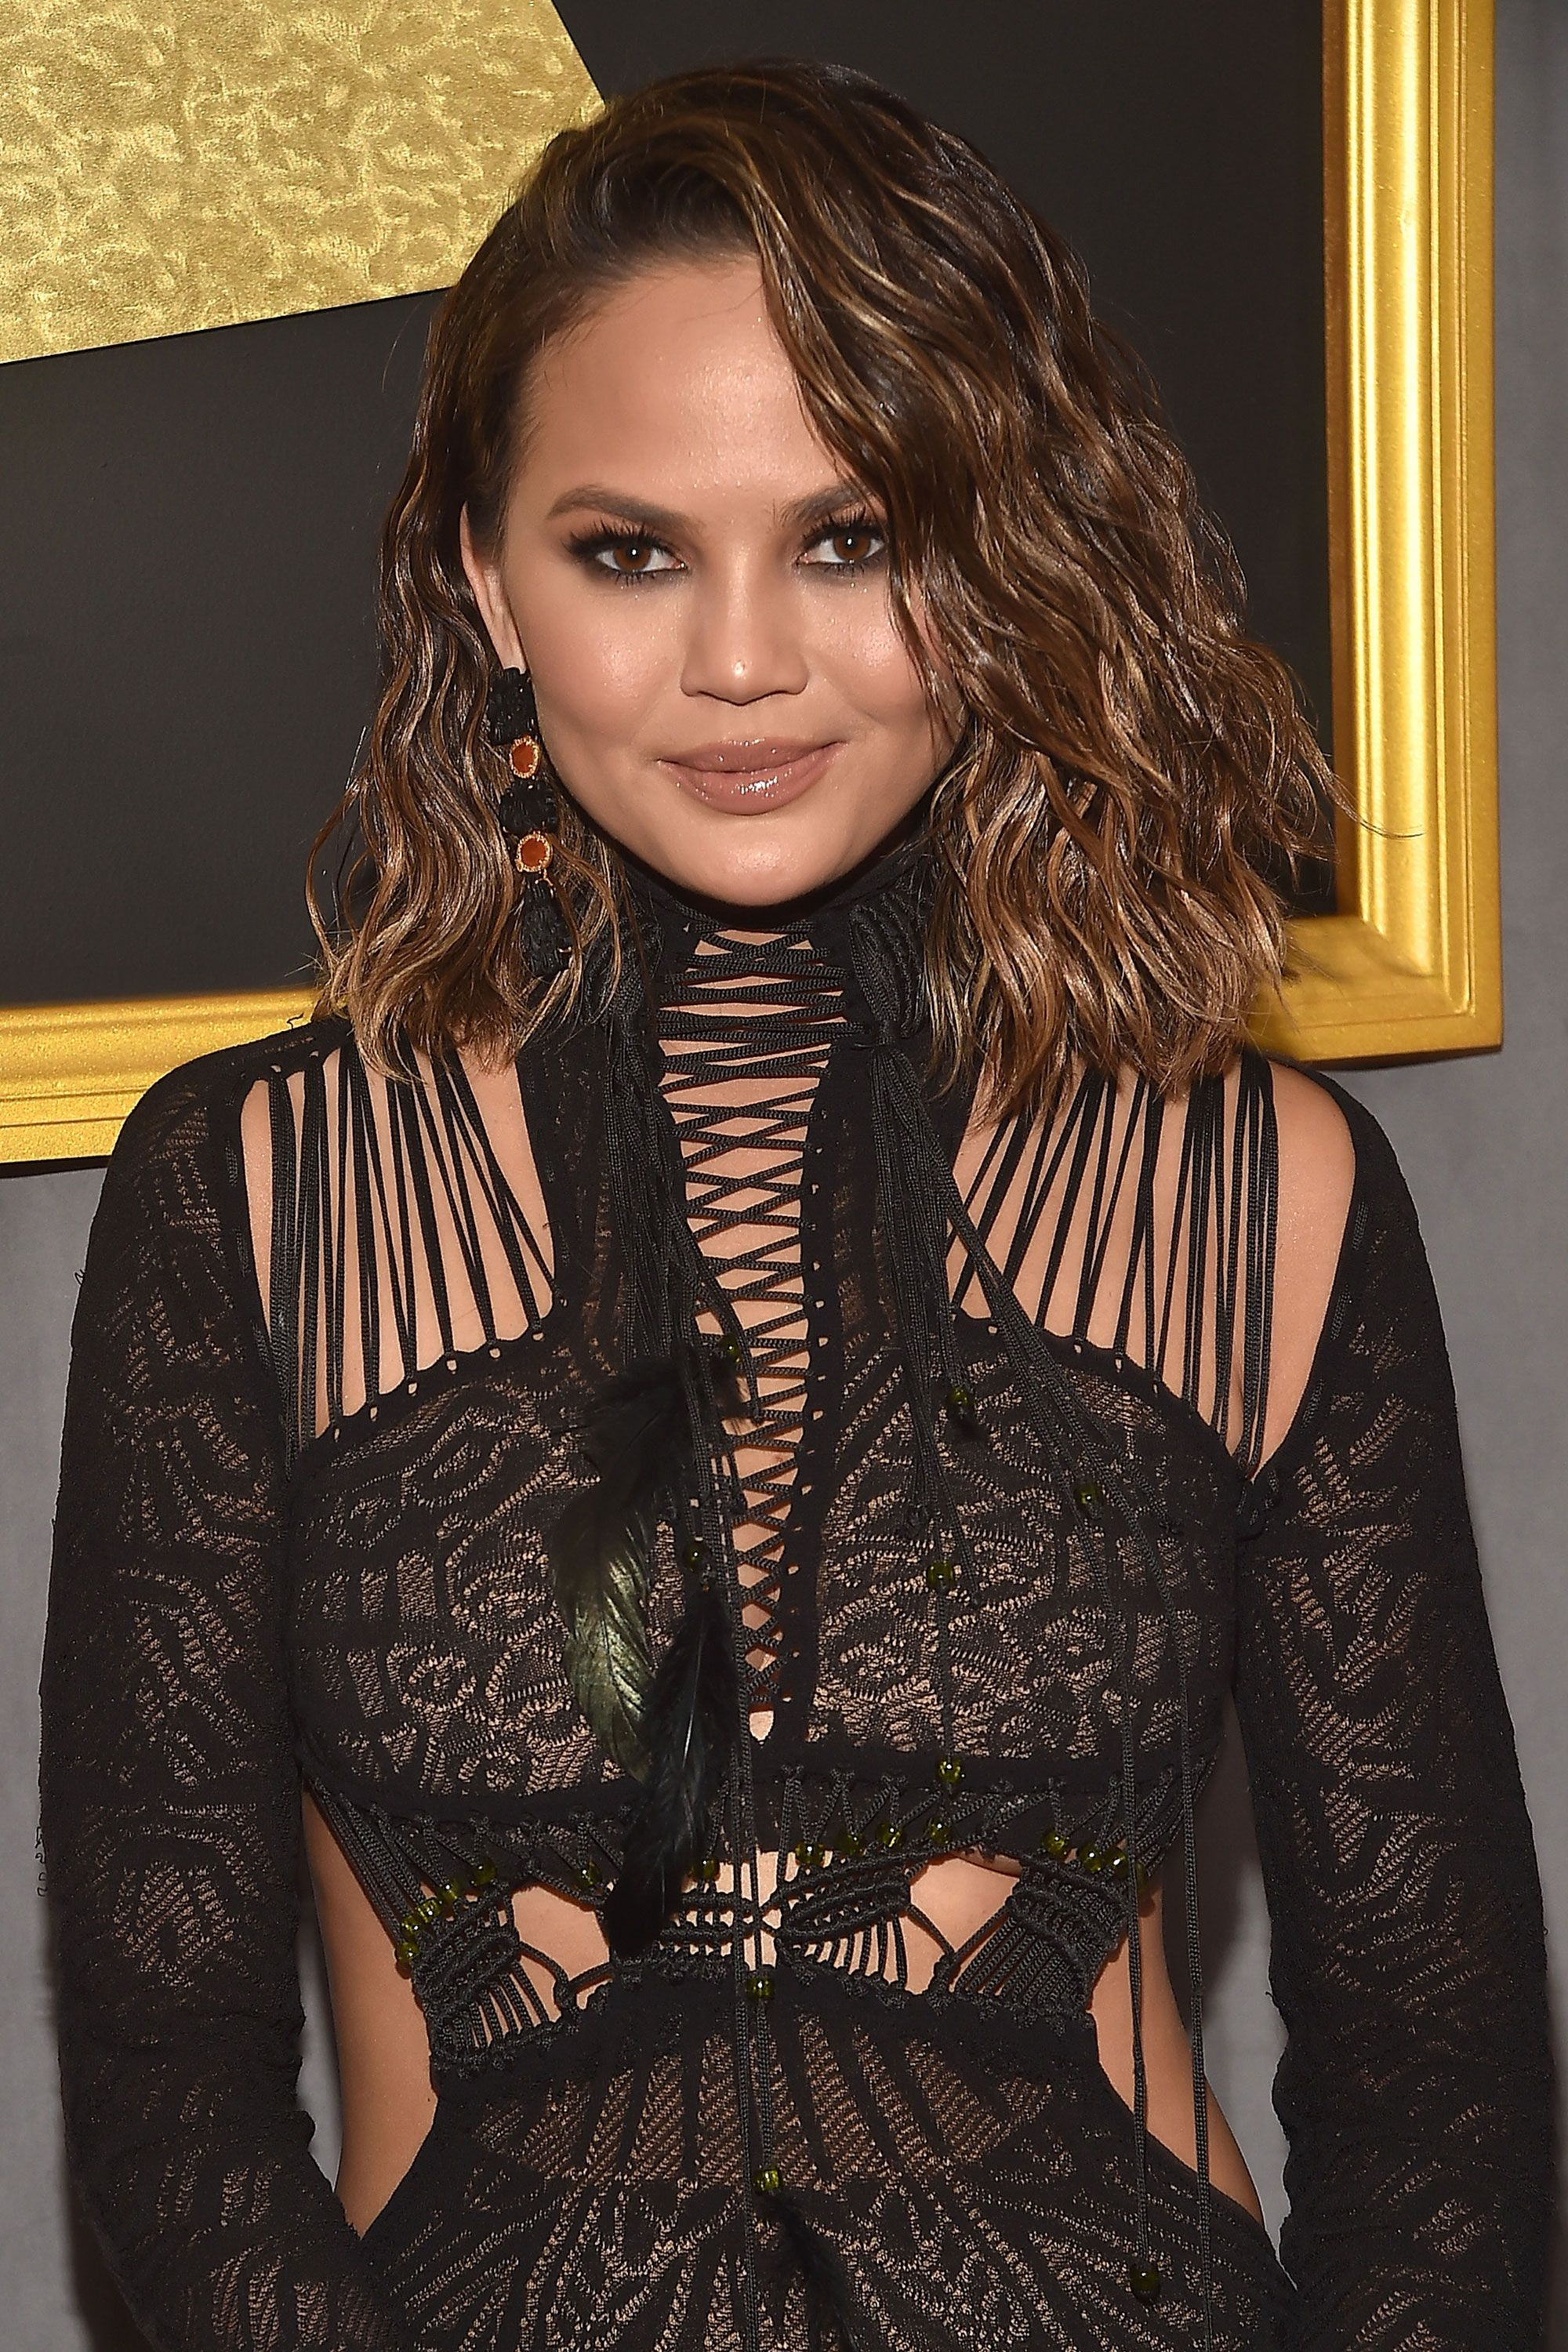 """<p>In a 2014&nbsp&#x3B;interview with <a href=""""http://www.cosmopolitan.com/entertainment/news/a24251/chrissy-teigen-on-june-2014-cosmo/"""" data-tracking-id=""""recirc-text-link"""" target=""""_blank""""><em data-redactor-tag=""""em"""" data-verified=""""redactor"""" data-tracking-id=""""recirc-text-link"""">Cosmopolitan</em></a>, Teigen discussed how she and husband John Legend keep things fun in the bedroom...and outside of it, too. """"We're by no means freaky-deaky, but let's just say, we're open to things,"""" she said. """"We're very OK with PDA. When we go to a restaurant, he loves when I wear a dress, so he can do some upper-thigh rubbing. I would love to see more husbands and wives making out!"""" She also revealed that the two of them are members of the mile-high club — which they joined while they were on a flight to visit family. """"We were on our way to Thailand to see my parents, flying commercial first-class,"""" she said. """"We were under a blanket. We weren't even in one of those pod things. I feel like we should get a trophy for that."""" But that's not all! Two years later, on <em data-redactor-tag=""""em"""" data-verified=""""redactor""""><a href=""""http://www.redbookmag.com/love-sex/relationships/a47495/chrissy-teigen-john-legend-public-sex/"""" target=""""_blank"""" data-tracking-id=""""recirc-text-link"""">Watch What Happens Live</a></em>, the couple revealed even more places they've had sex, including at a campaign event for Barack Obama in 2008 and a Fred Segal boutique in Los Angeles.&nbsp&#x3B;</p>"""